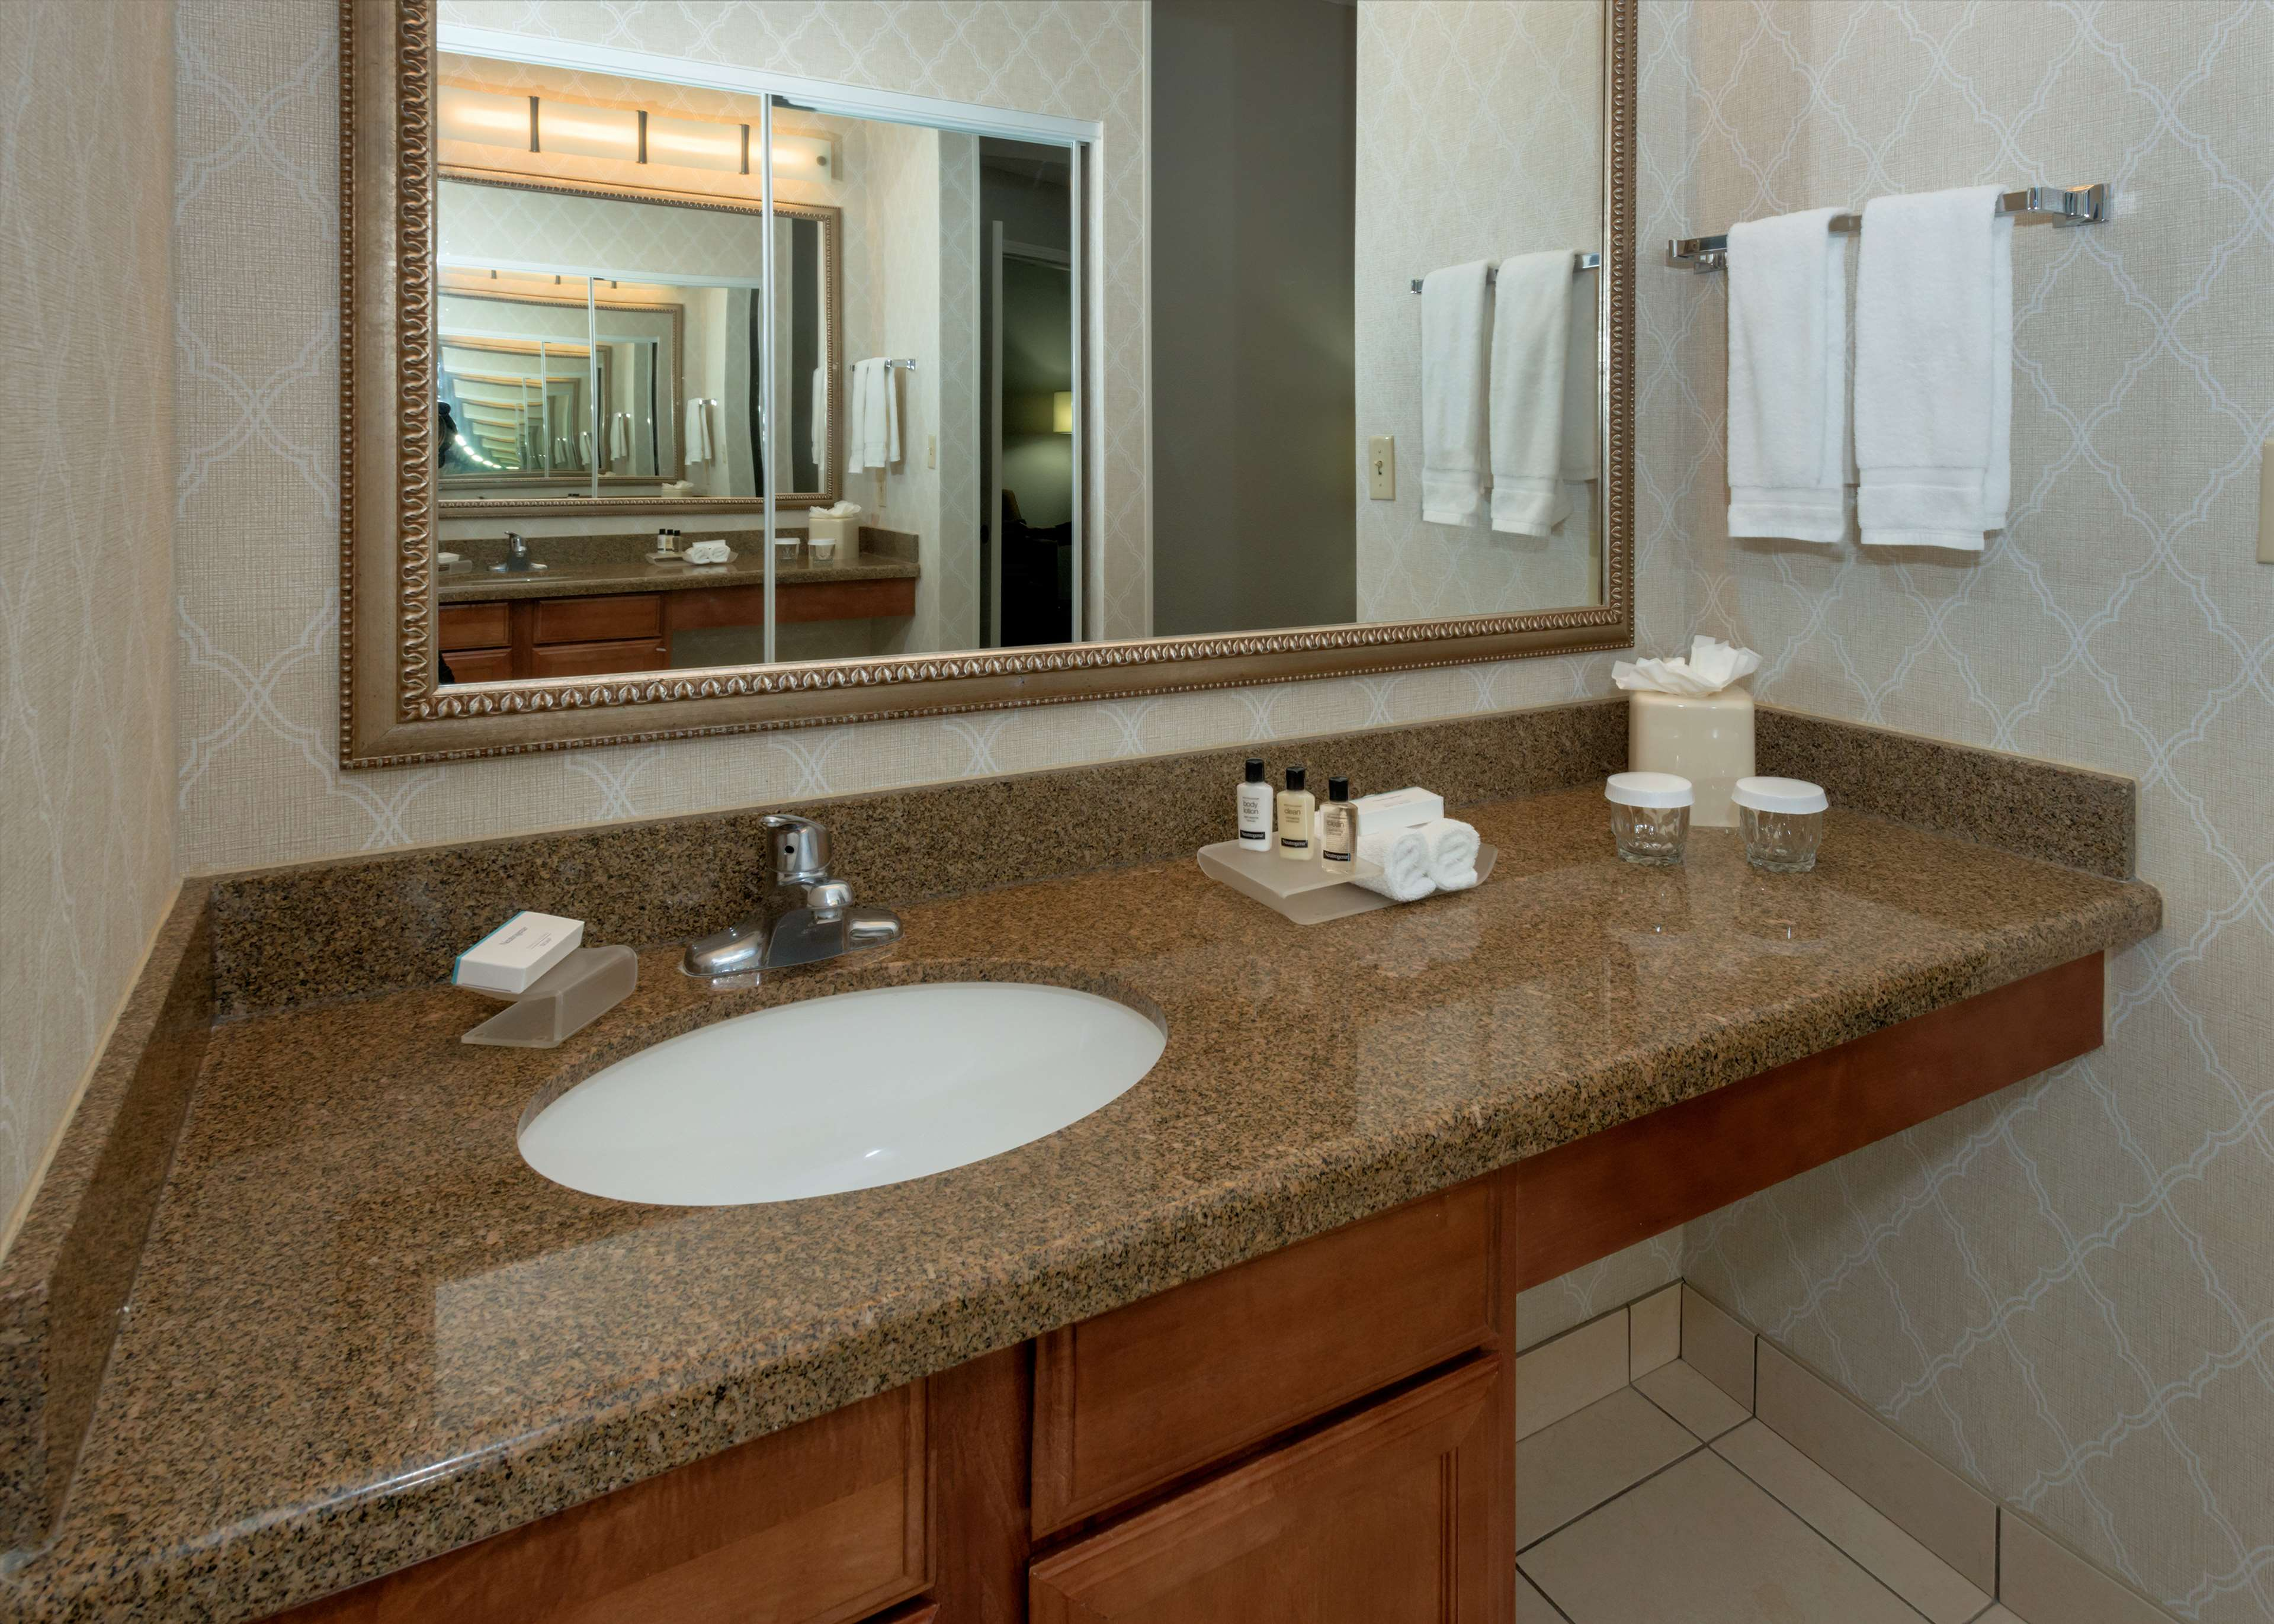 Homewood Suites by Hilton New Orleans image 14